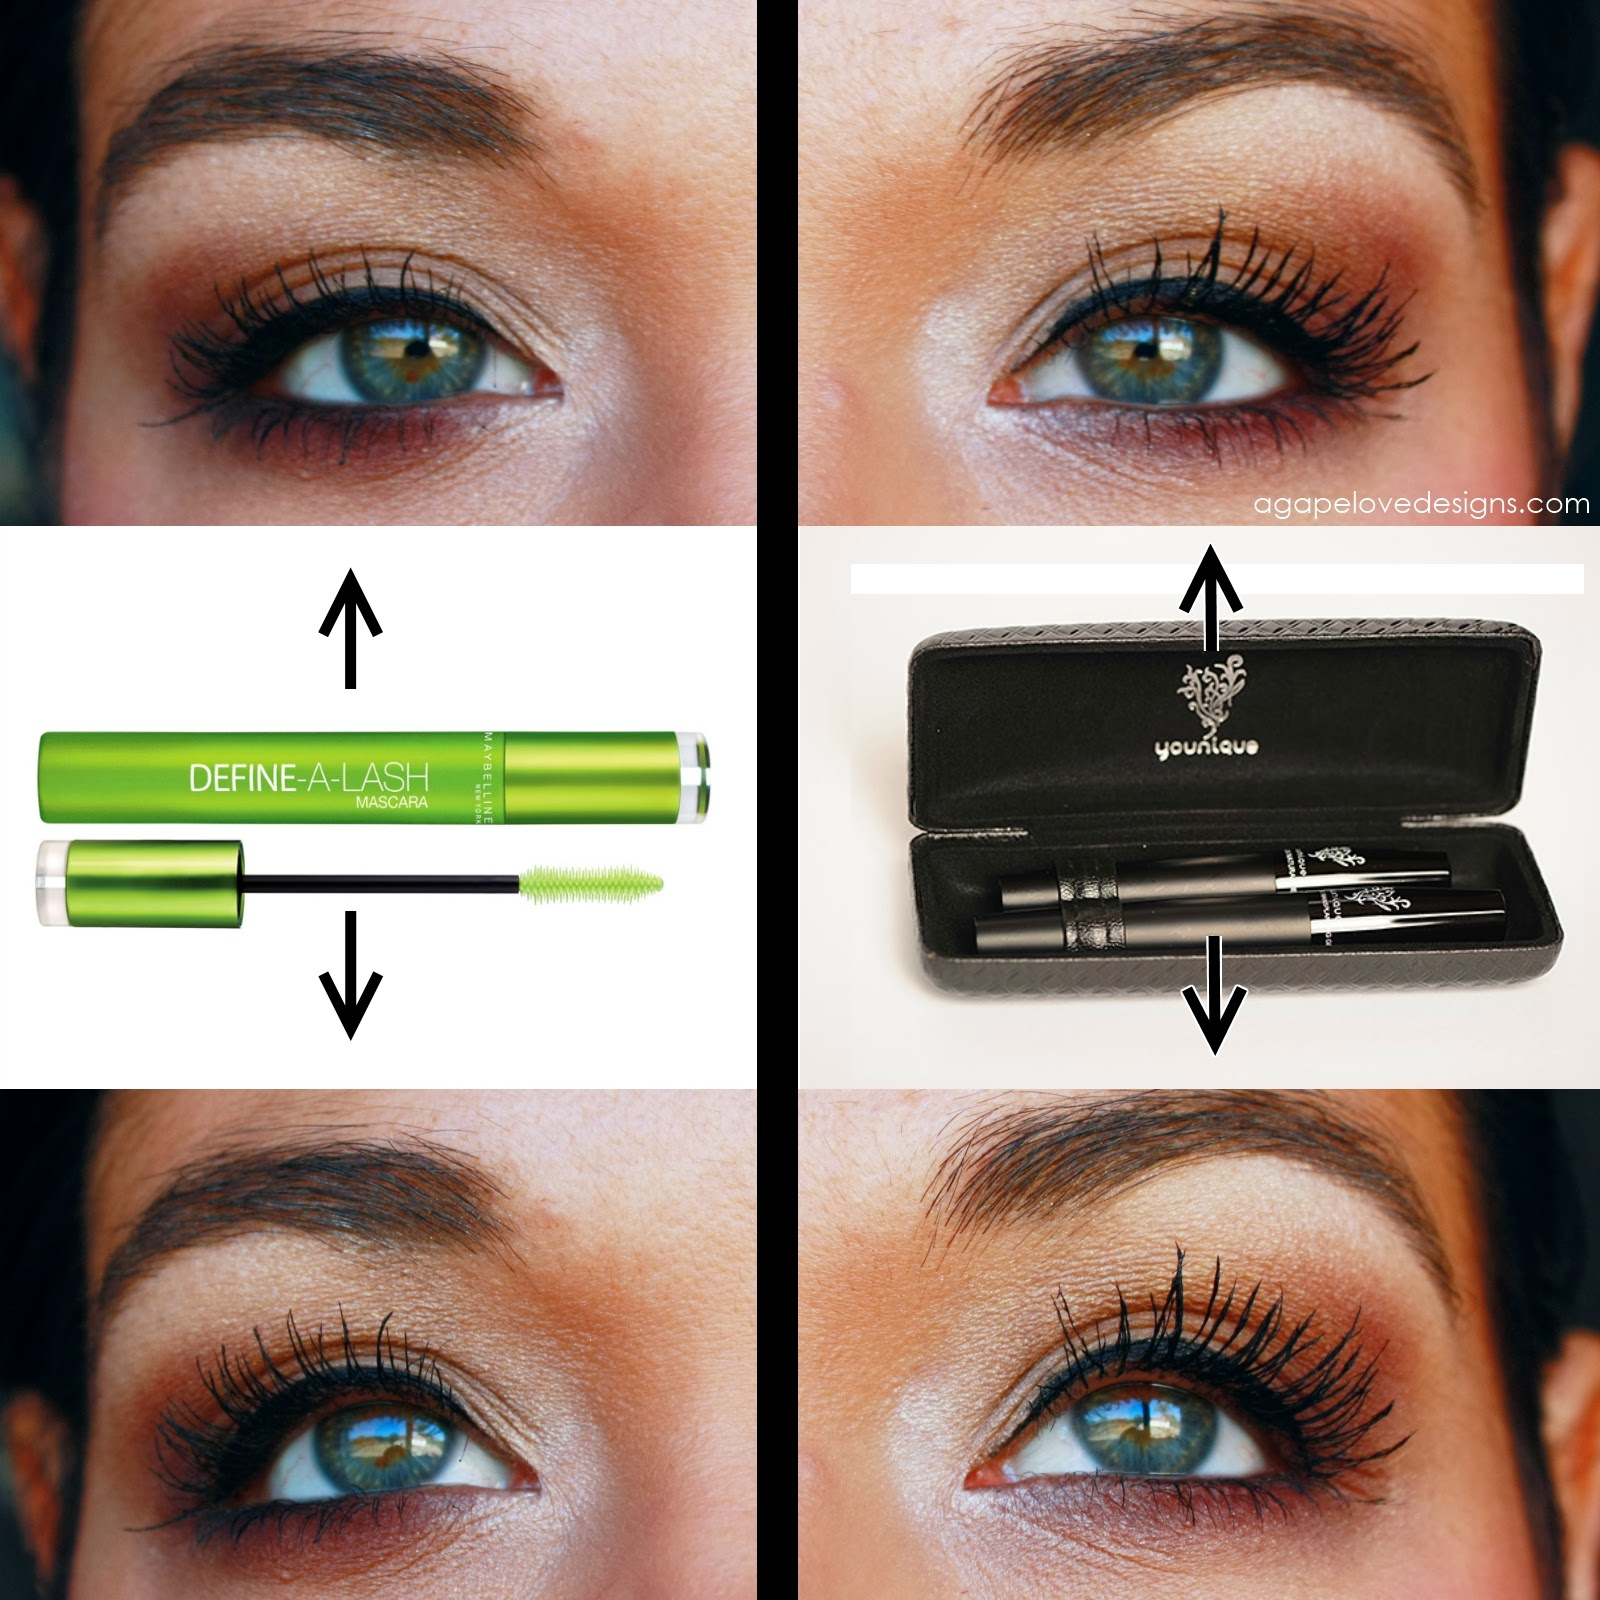 a76d538065f The give the glamorous look and length of false lashes, but they look so  much more natural, since they are going directly on your own lashes!